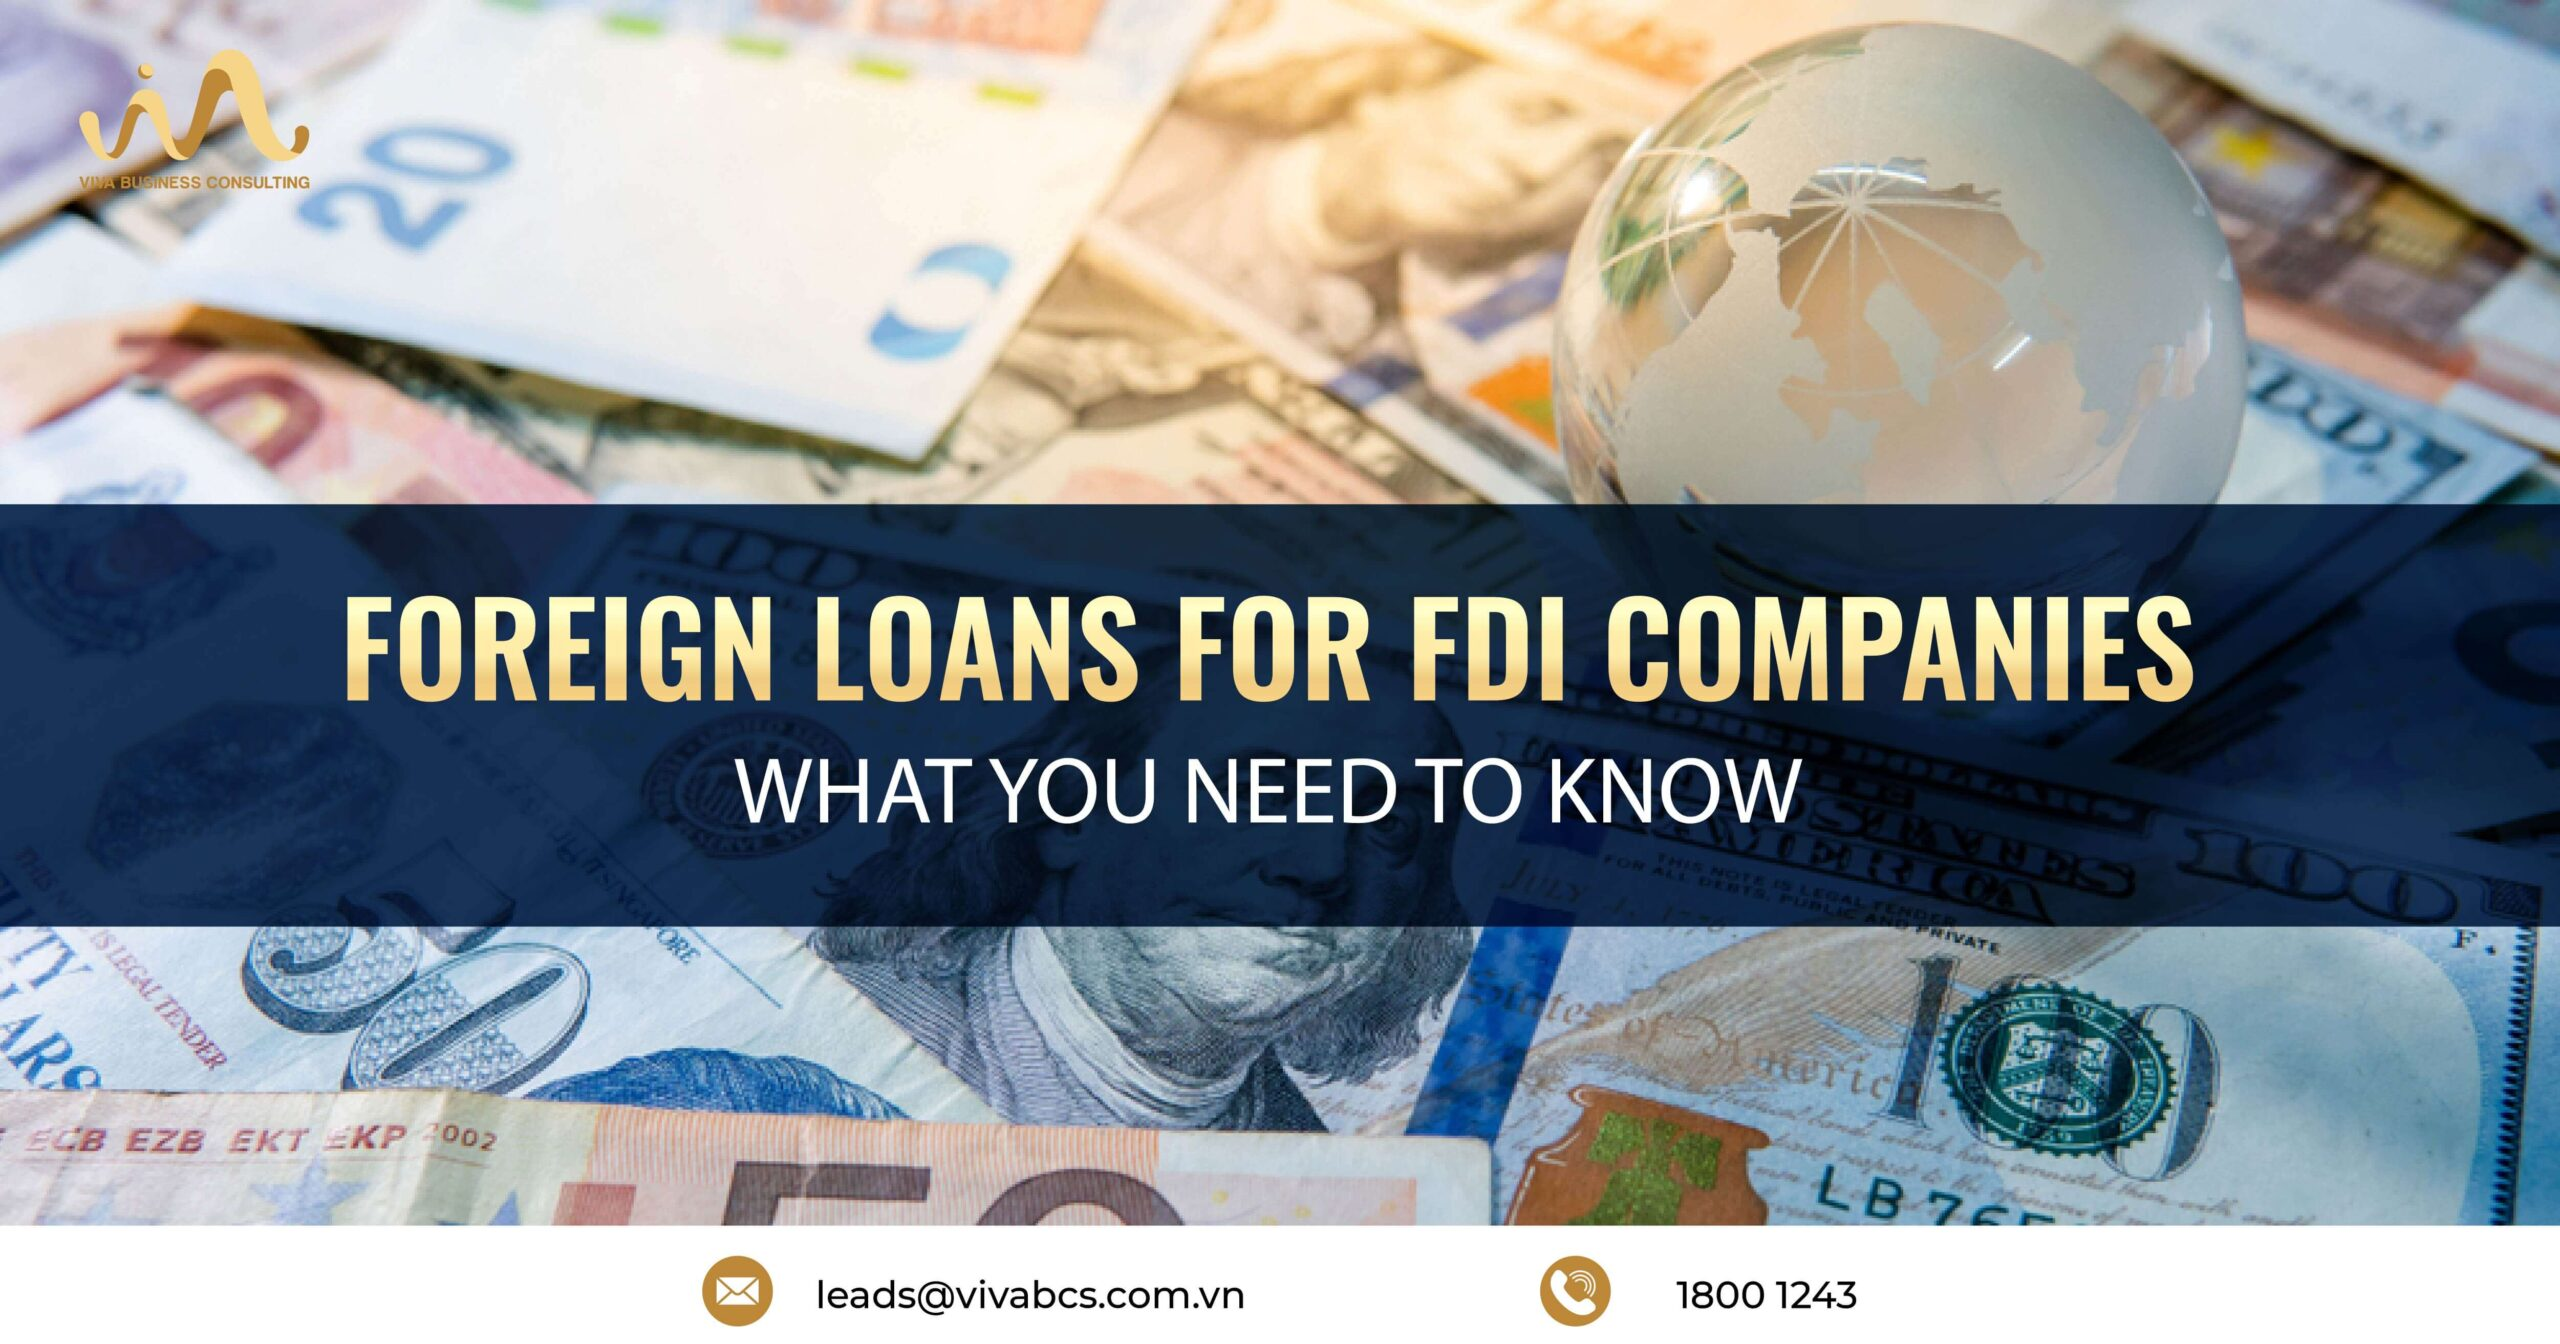 Requirements For Taking Foreign Loans Applied To FDI Companies - Foreign Loans subject to registration with the State Bank